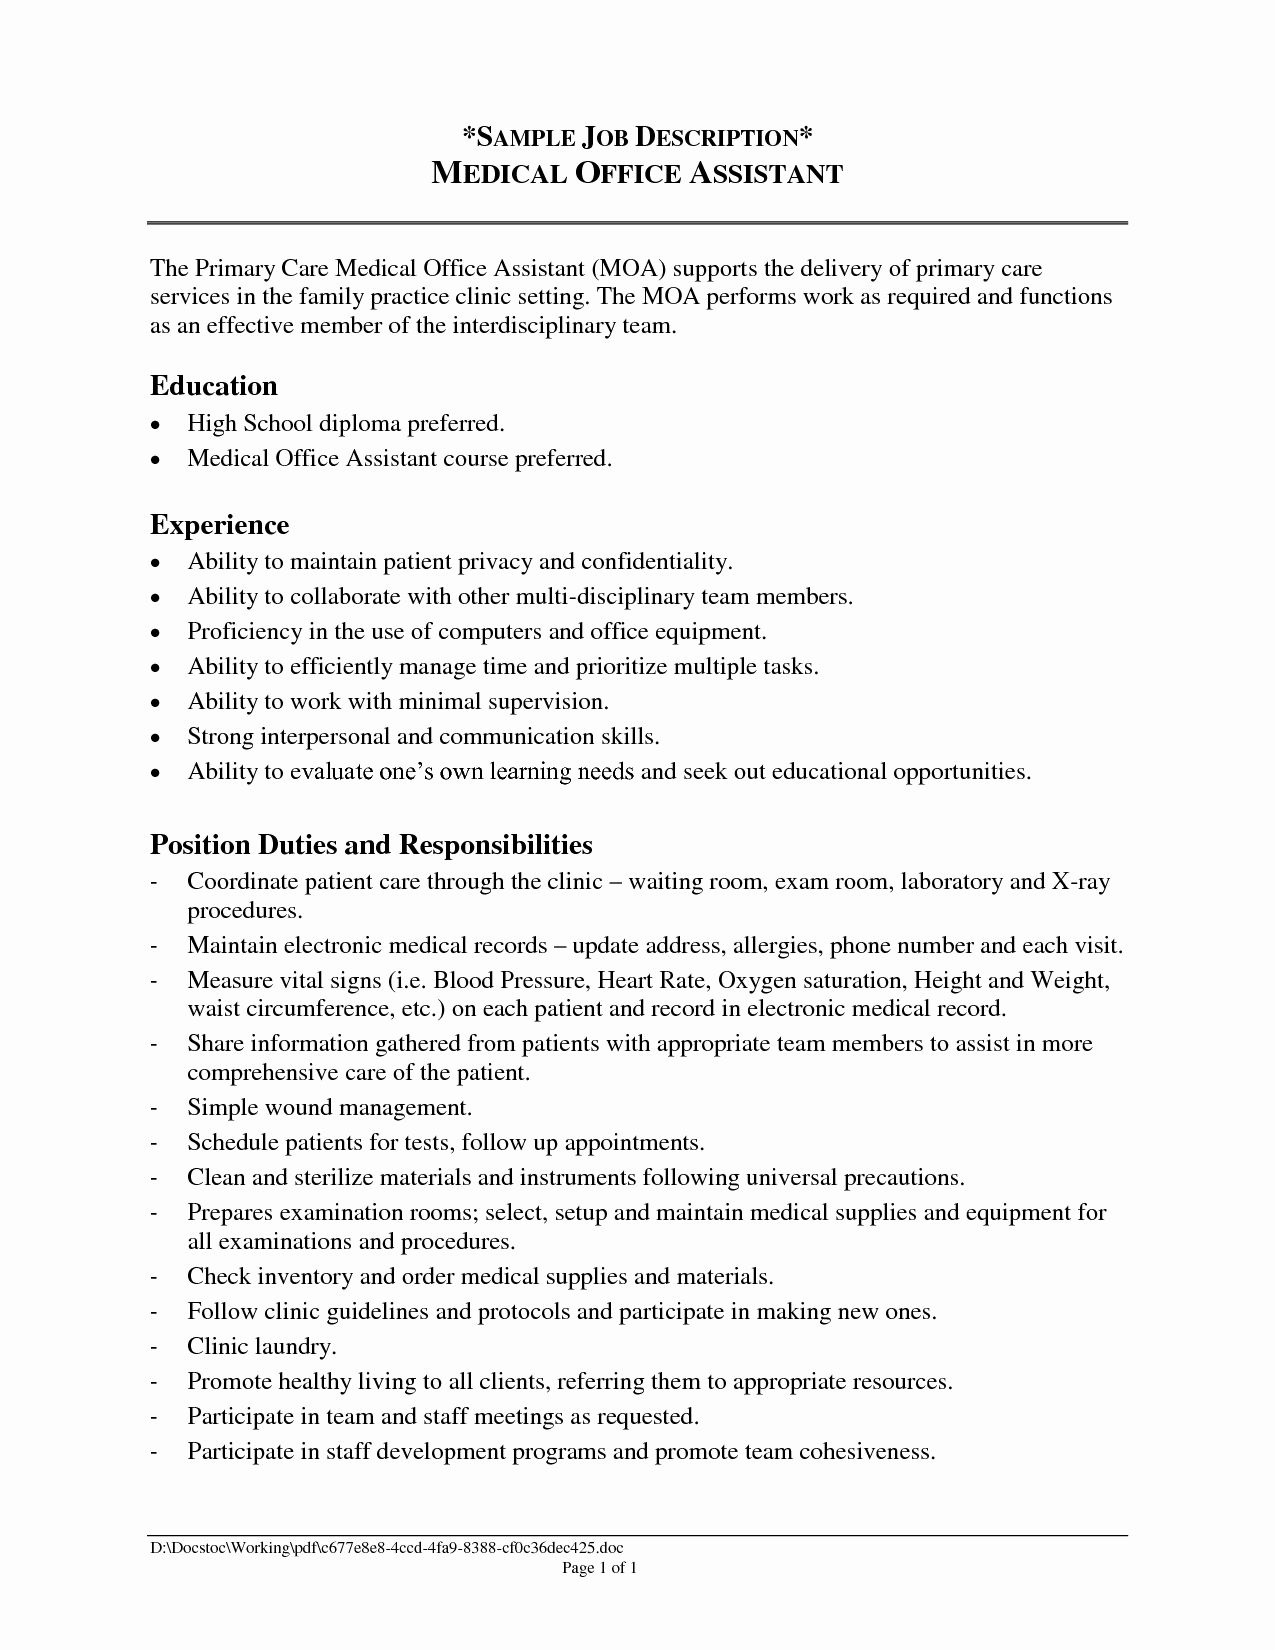 23 Medical Office assistant Job Description Resume in 2020